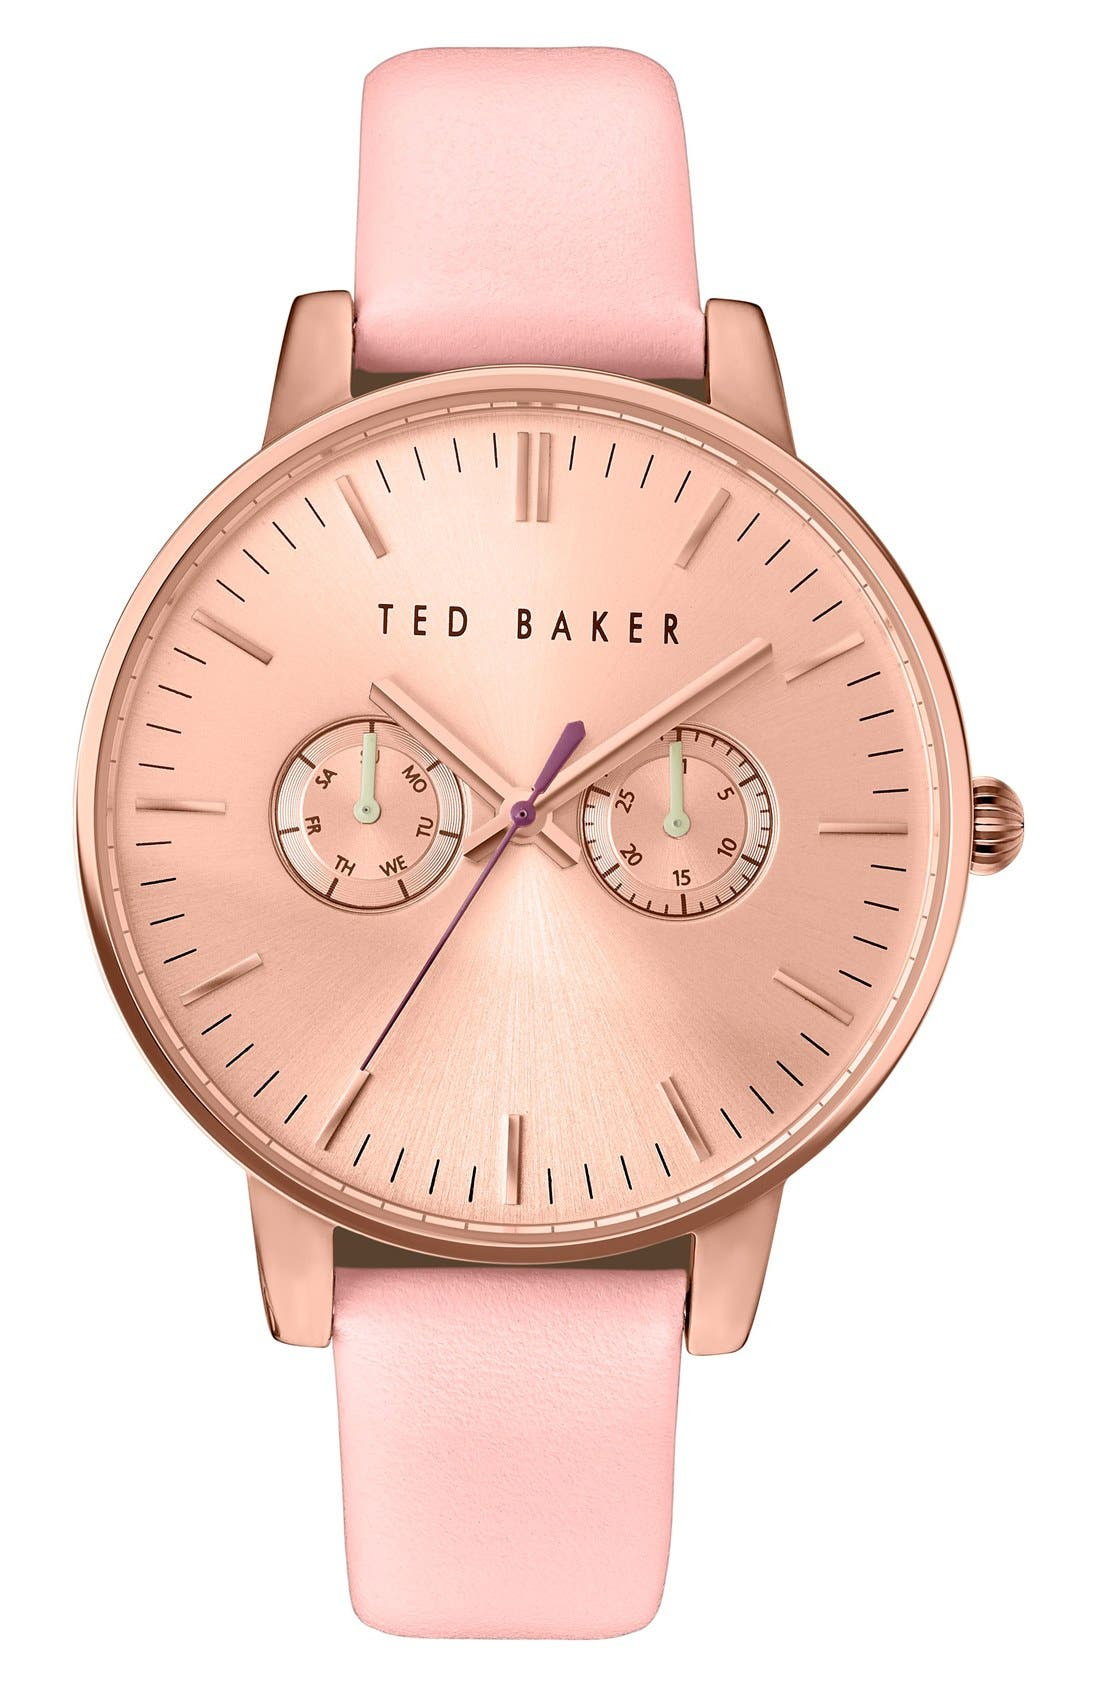 TED BAKER LONDON 'Dress Sport' Multifunction Leather Strap